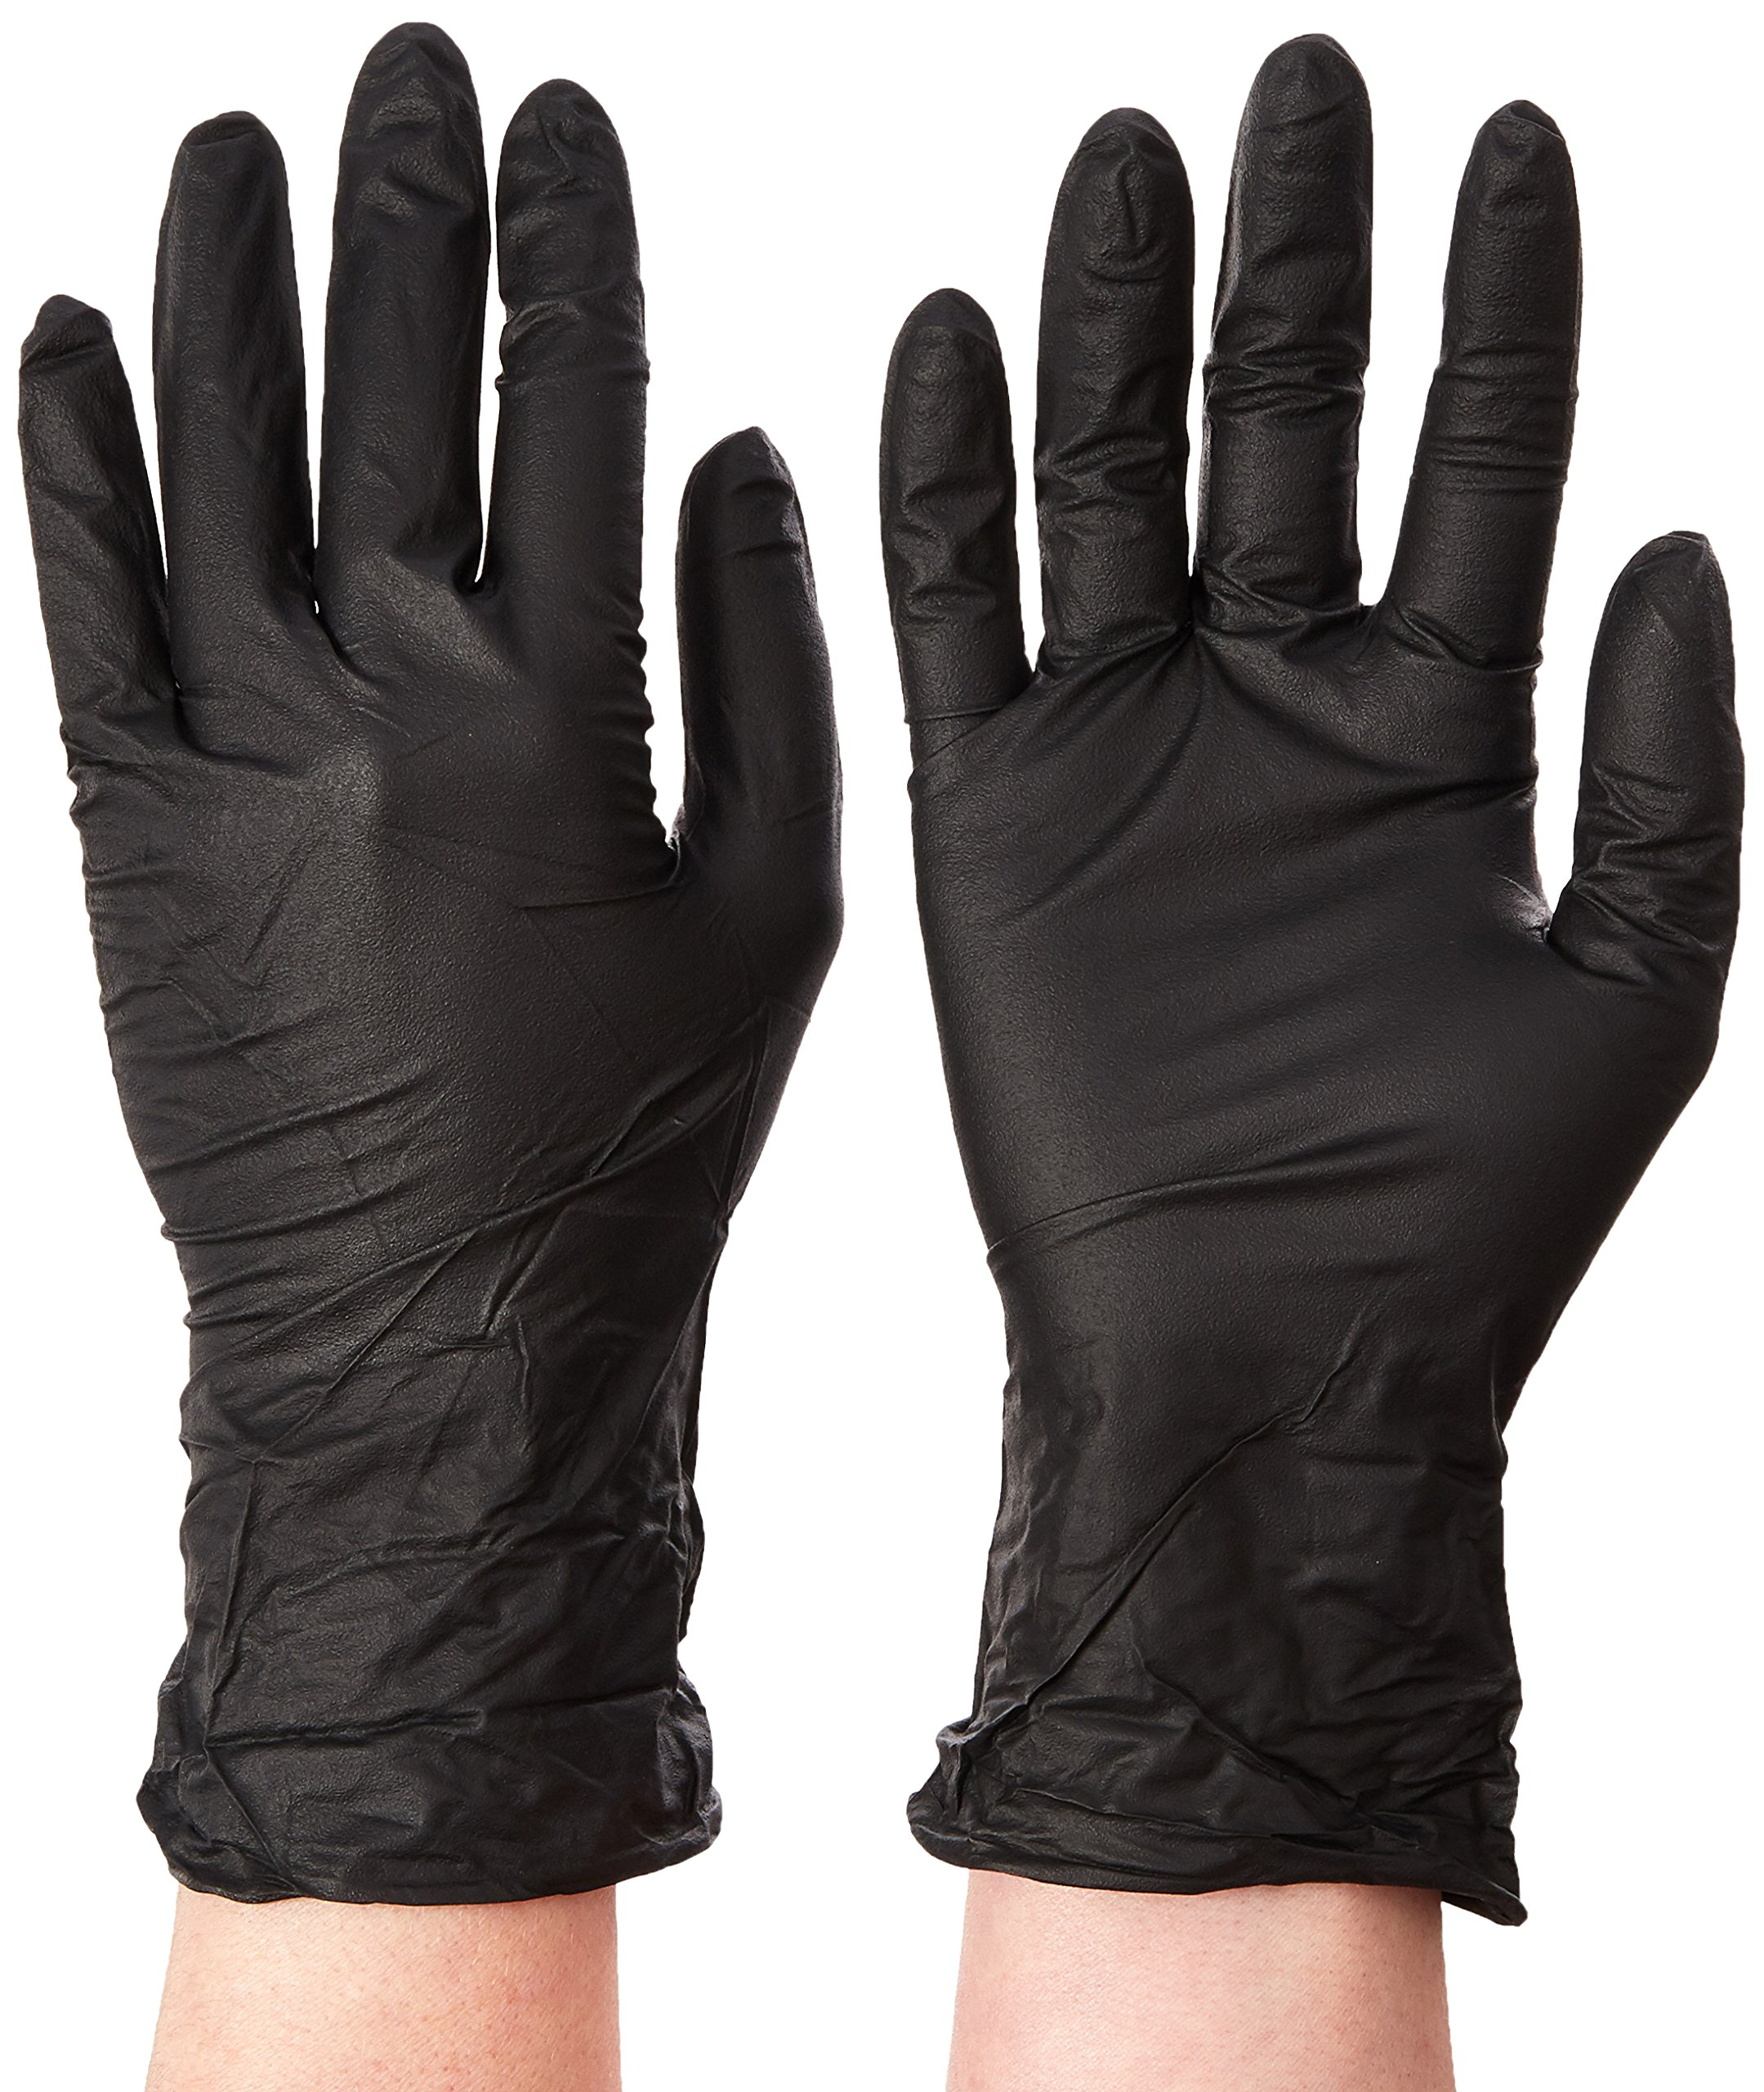 Microflex MK-296-S MidKnight Powder-Free Examination Glove, 9.6'' Length, 3.1'' Cuff Thickness, 4.7'' Palm Thickness, 5.5'' Finger Thickness, Small, Black (Pack of 100)